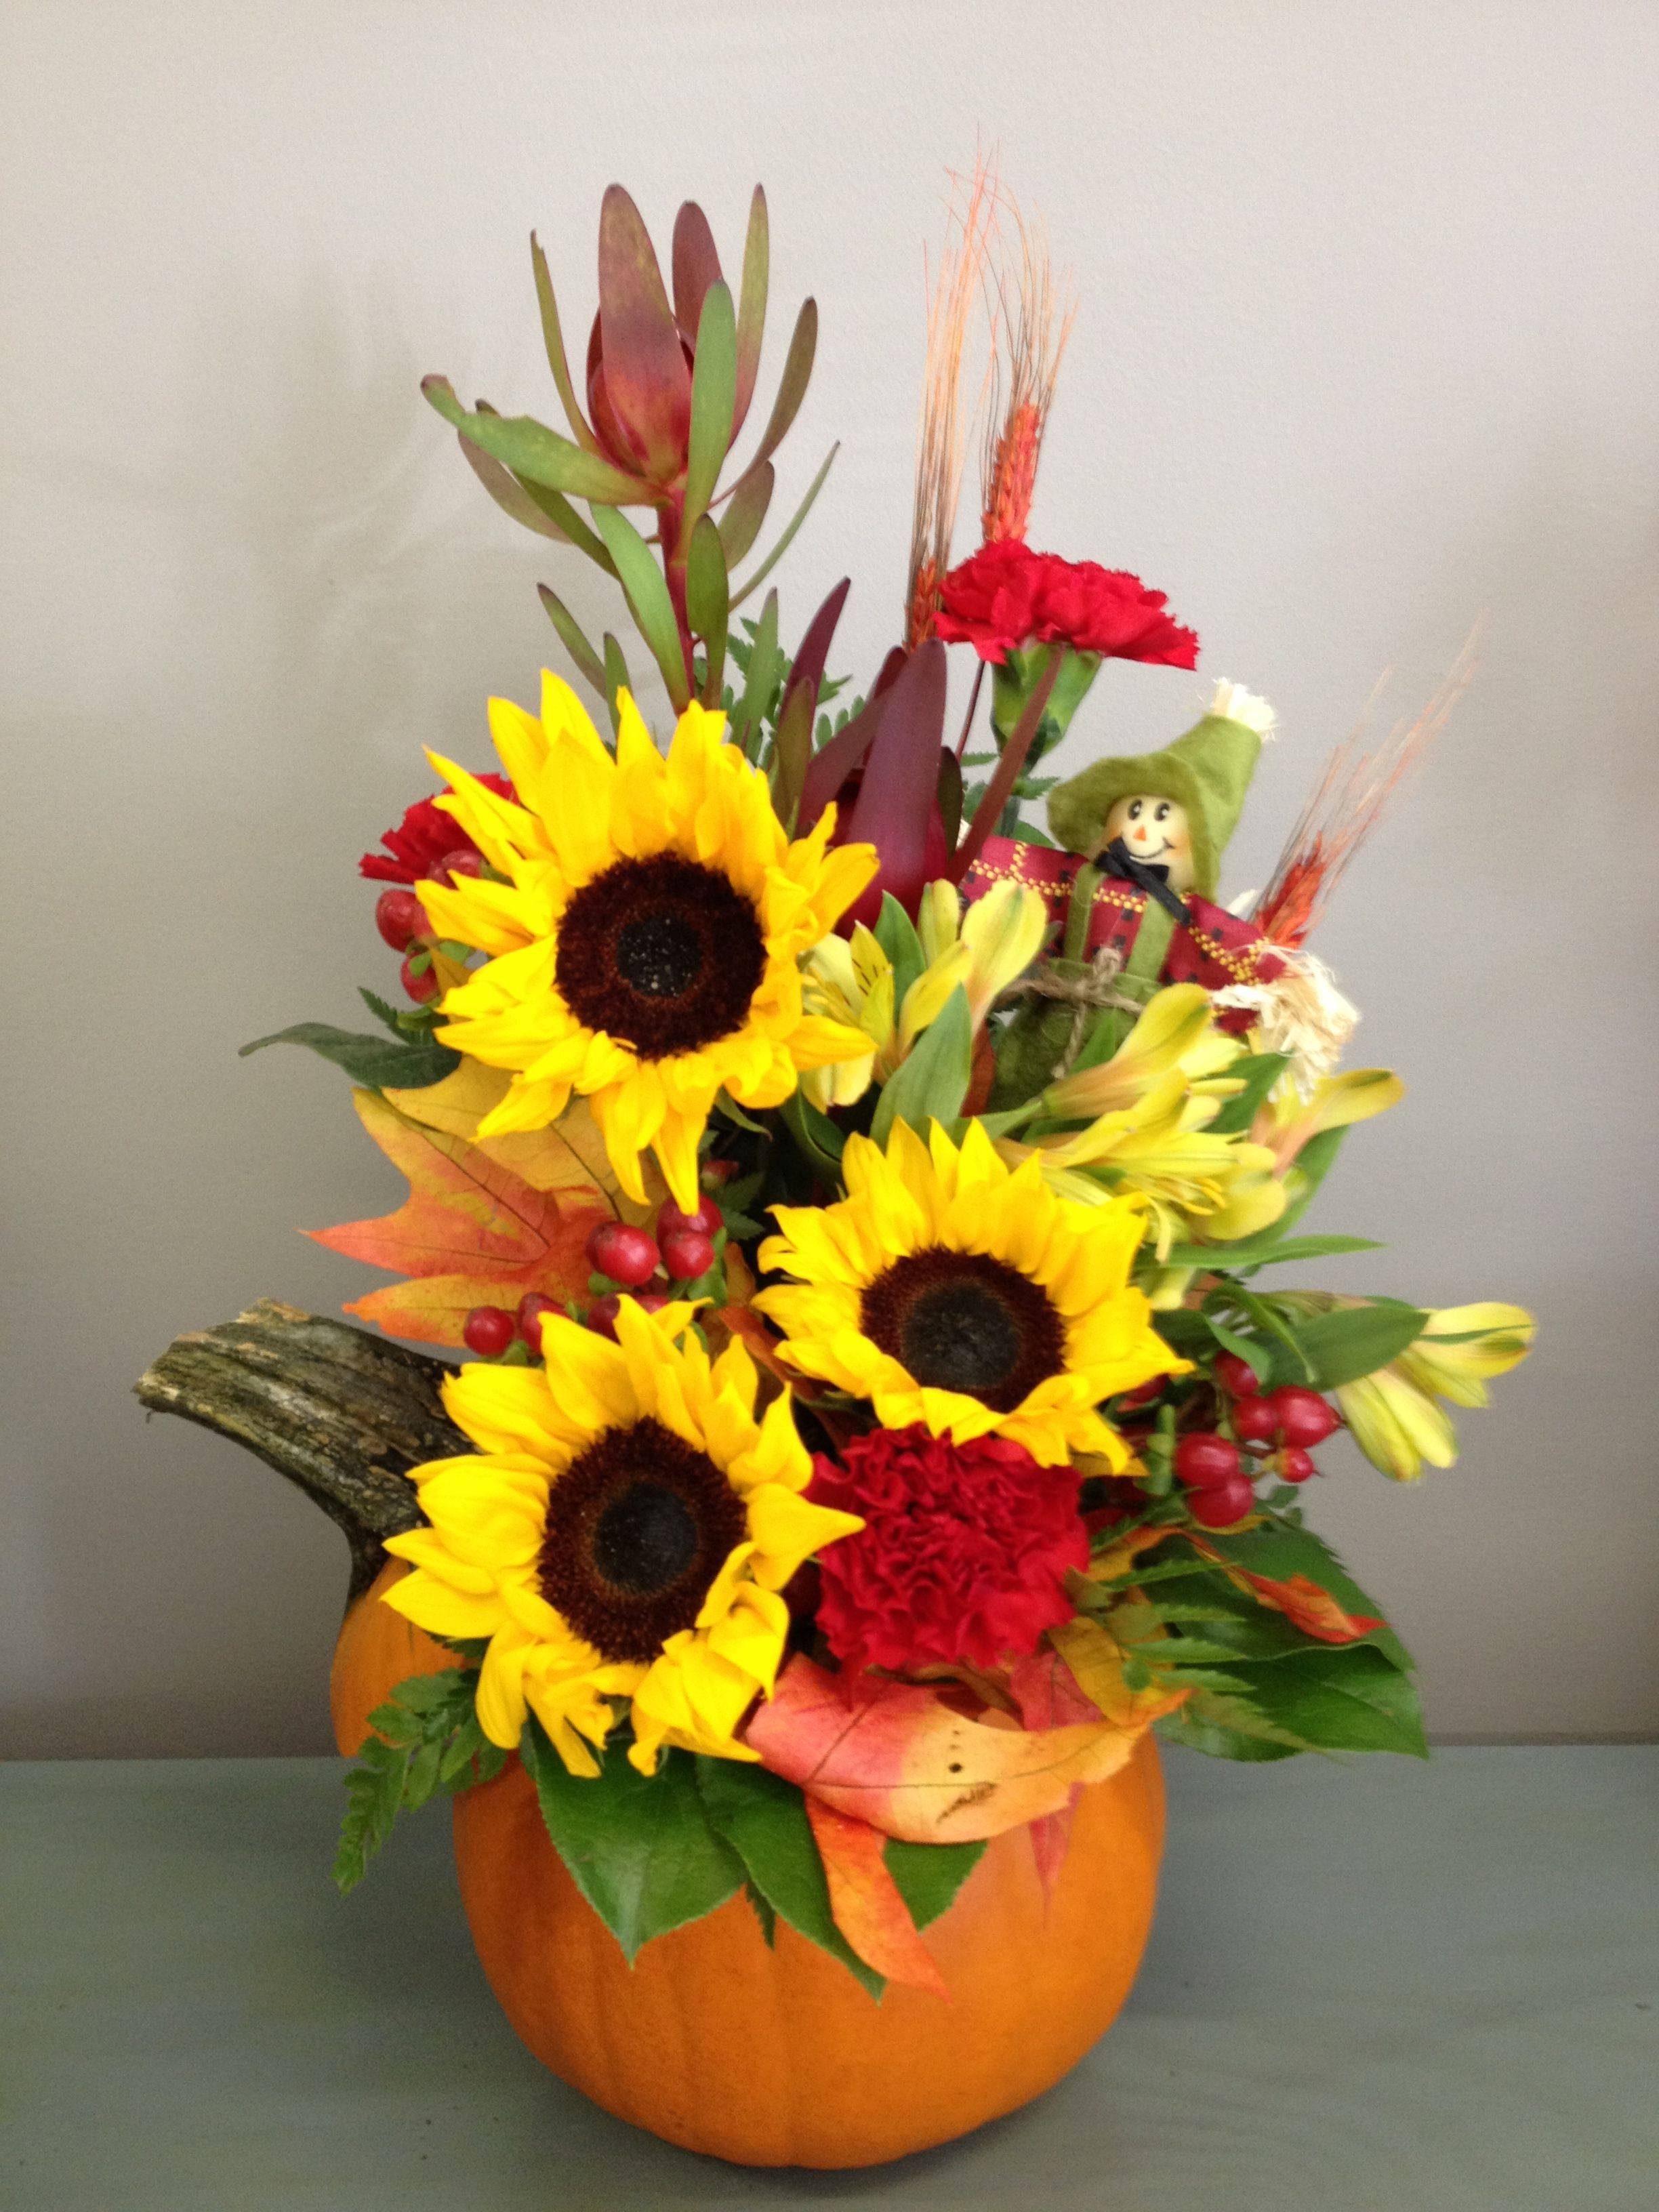 Fresh Cut Flowers Arrangement In A Pumpkin One Of Our Many Great Fall Visit Us On Fb Page Graceful Petals To See More Ideas